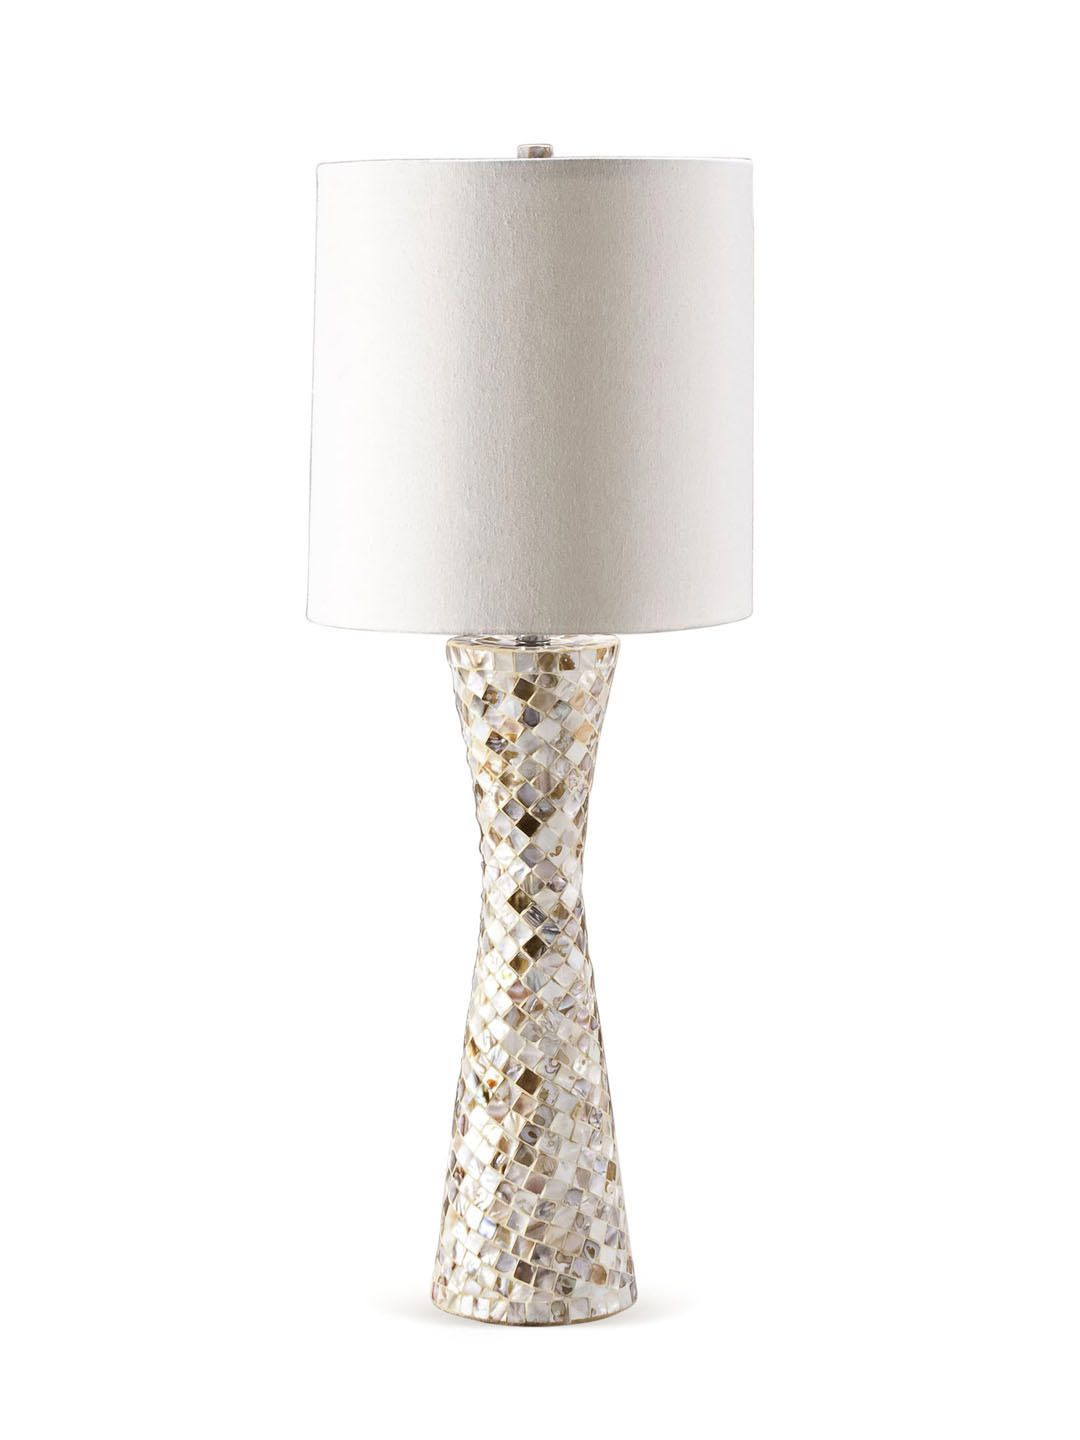 Interlude home sunset pearl lamp